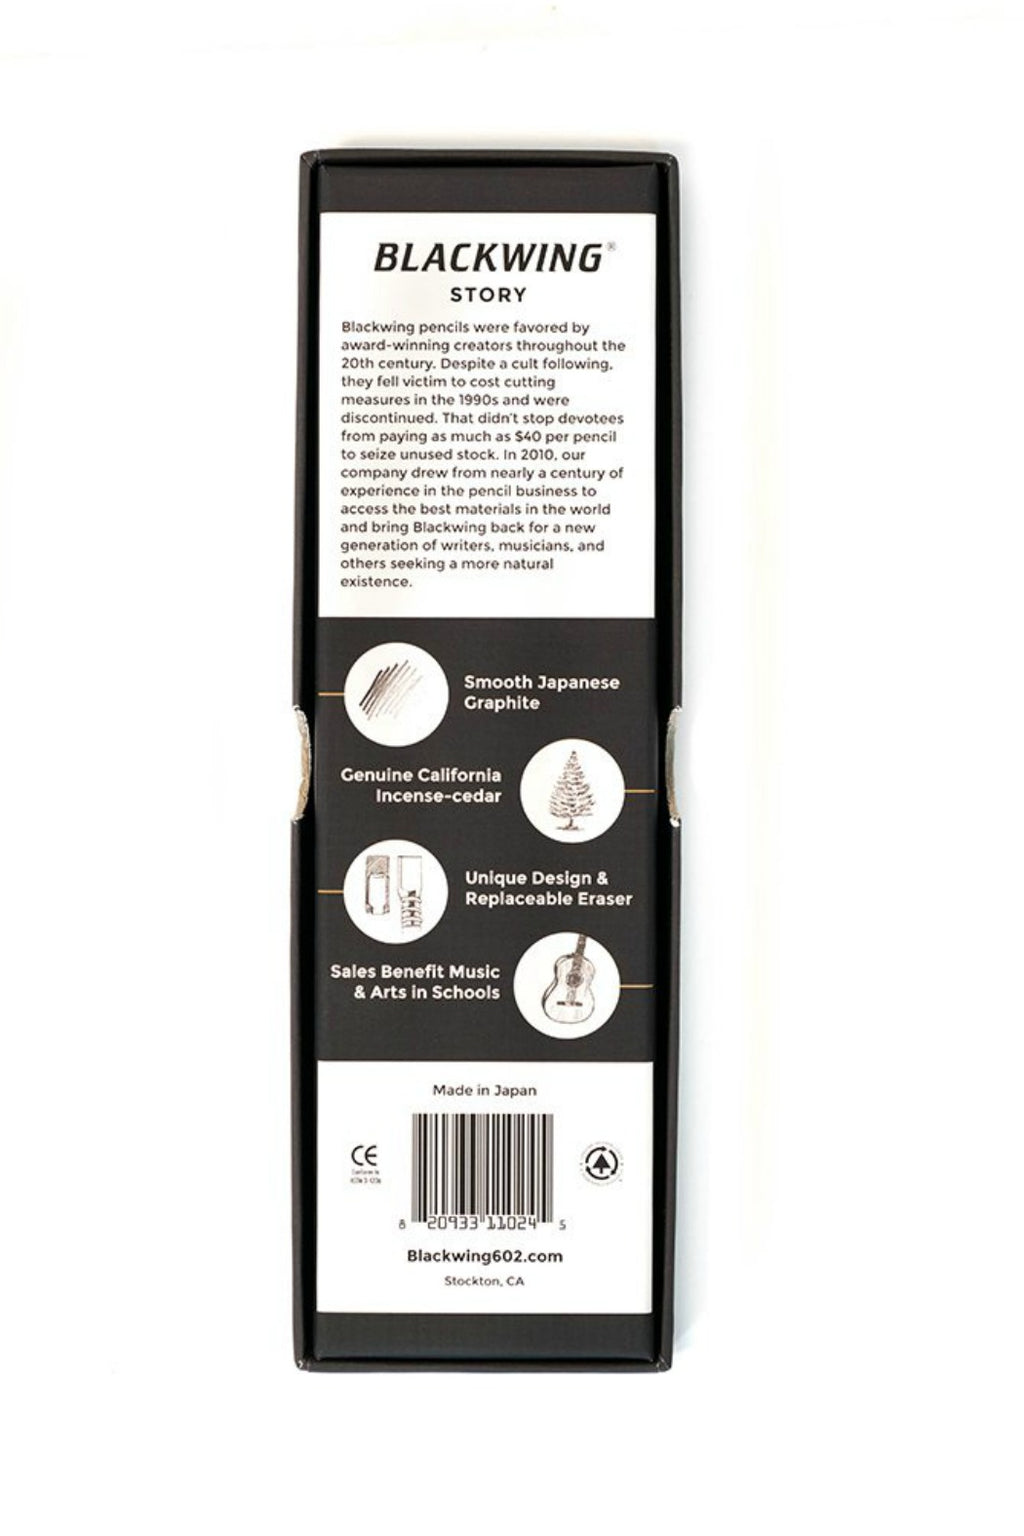 Blackwing 602 Pencils (12 pack) - Pearl White